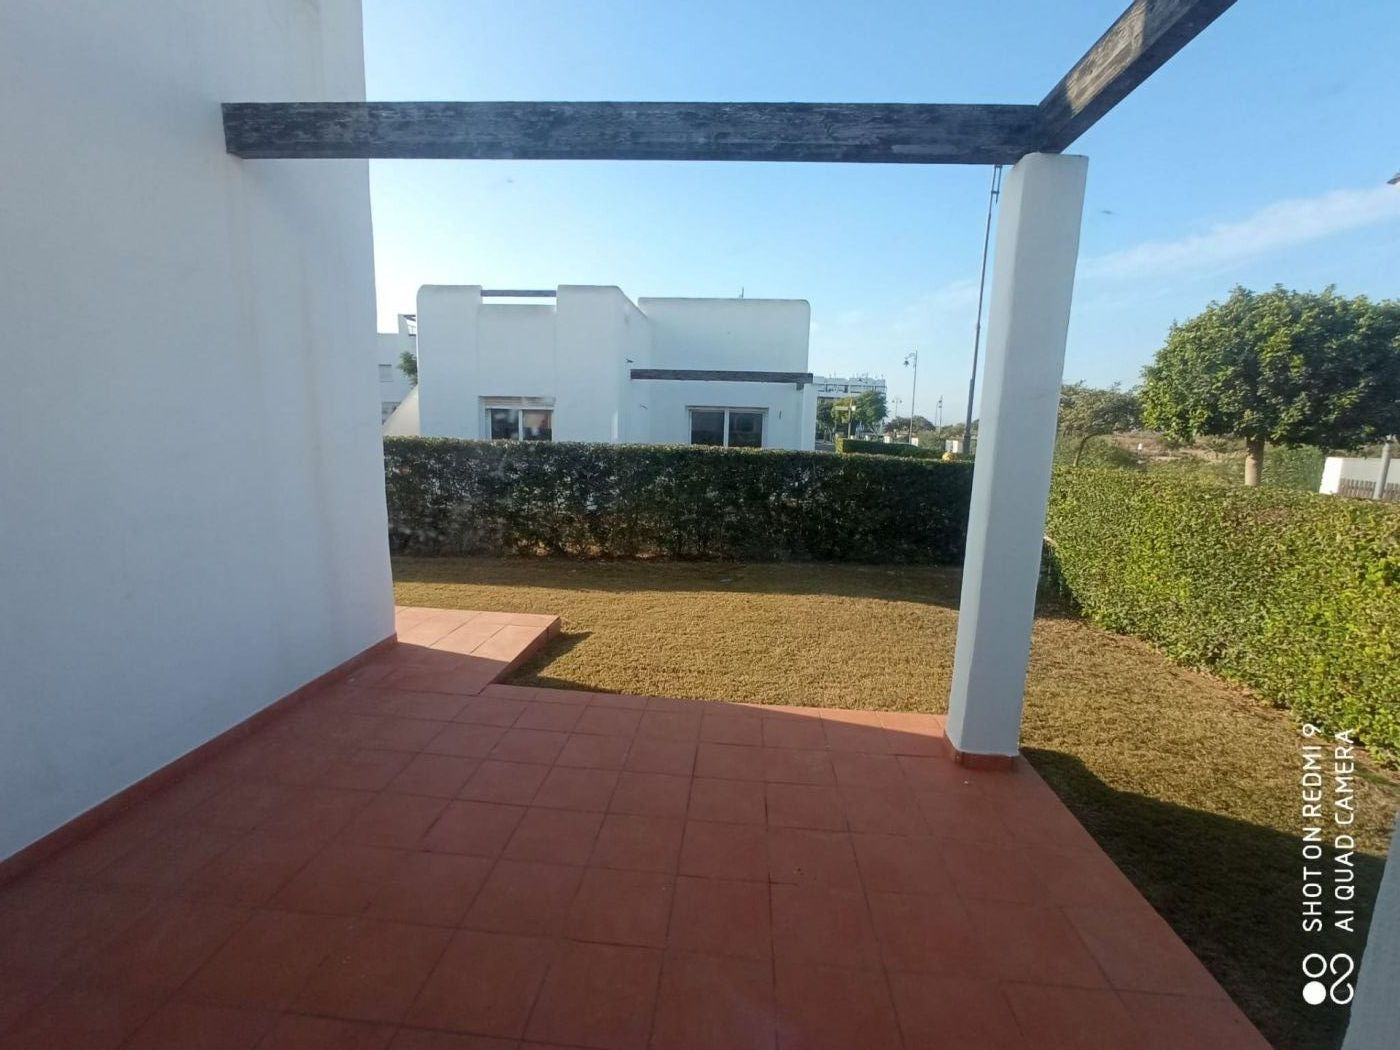 Image 7 Villa ref 3500 for sale in Condado De Alhama Spain - Quality Homes Costa Cálida